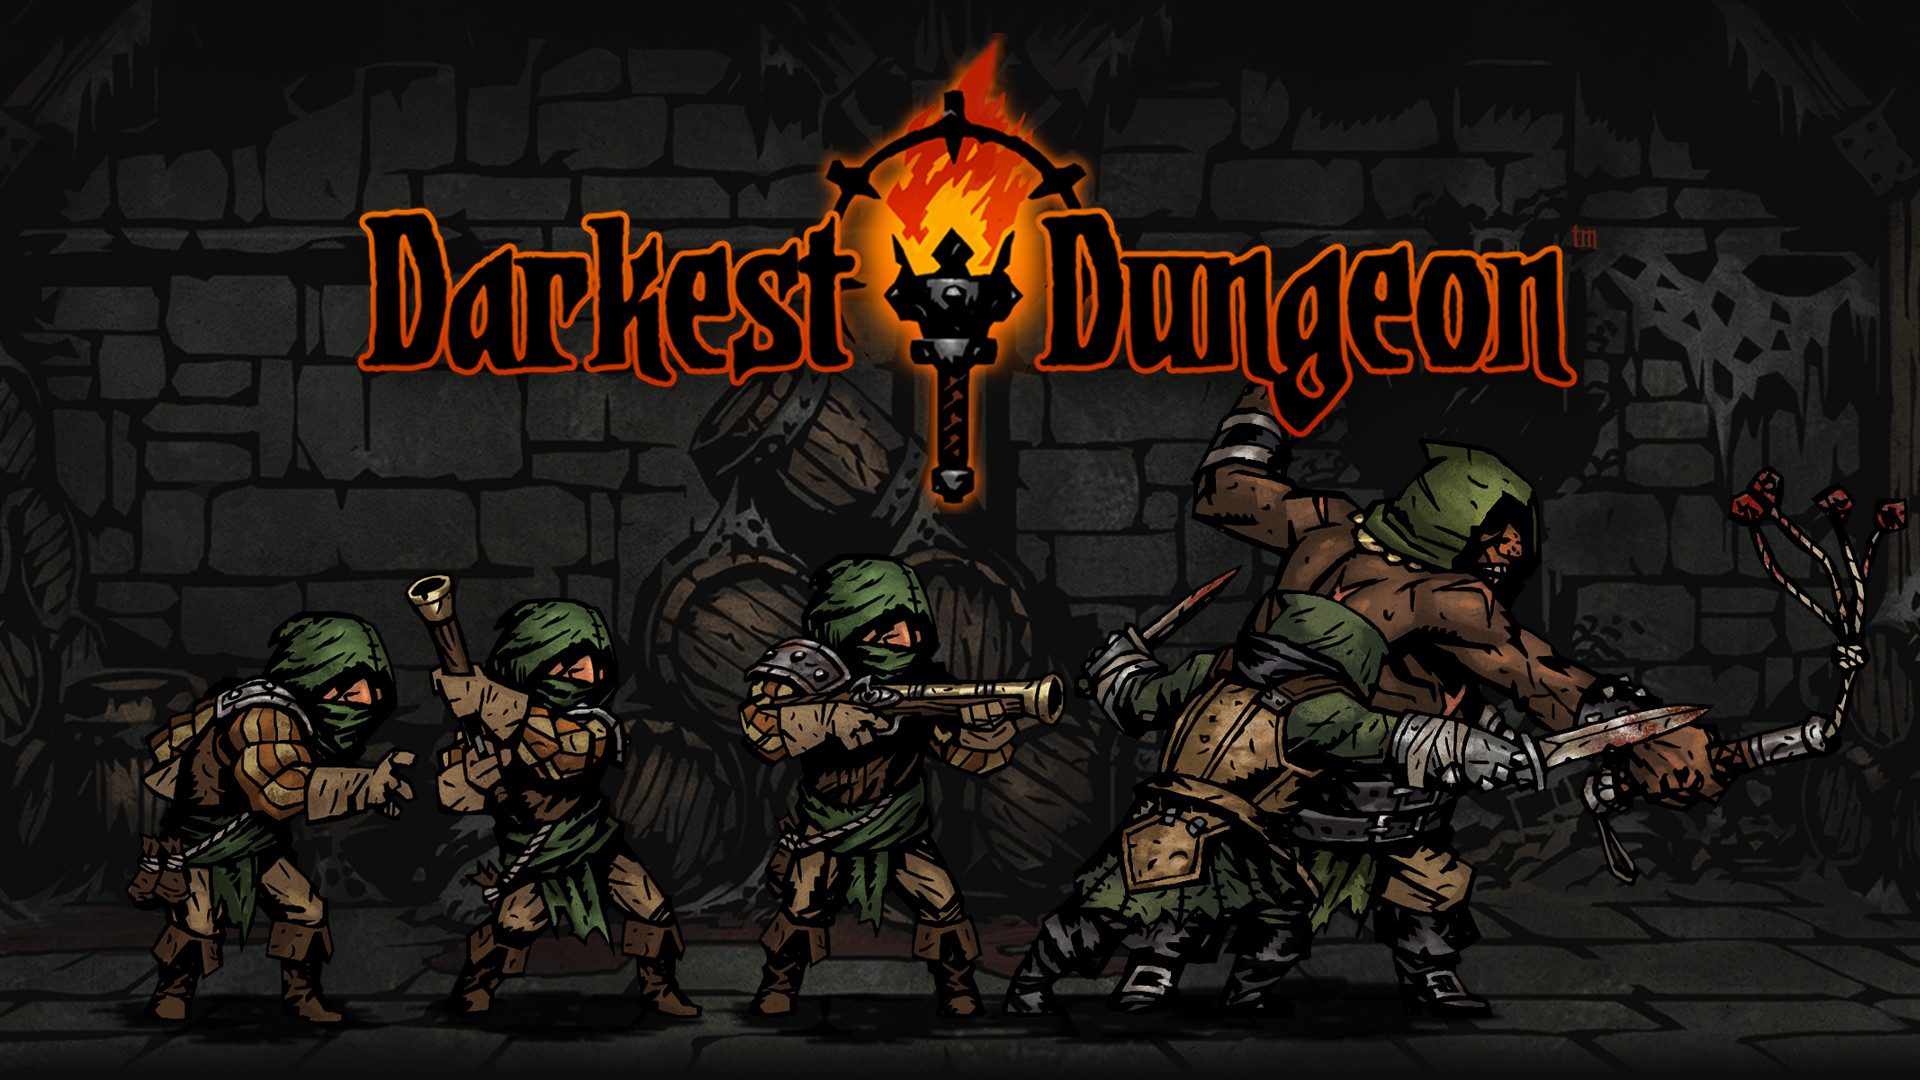 Darkest-Dungeon-set-1920x1080-I-made-in-my-spare-time-Need-iPhone-S-Plus-wallpaper-wp3404460